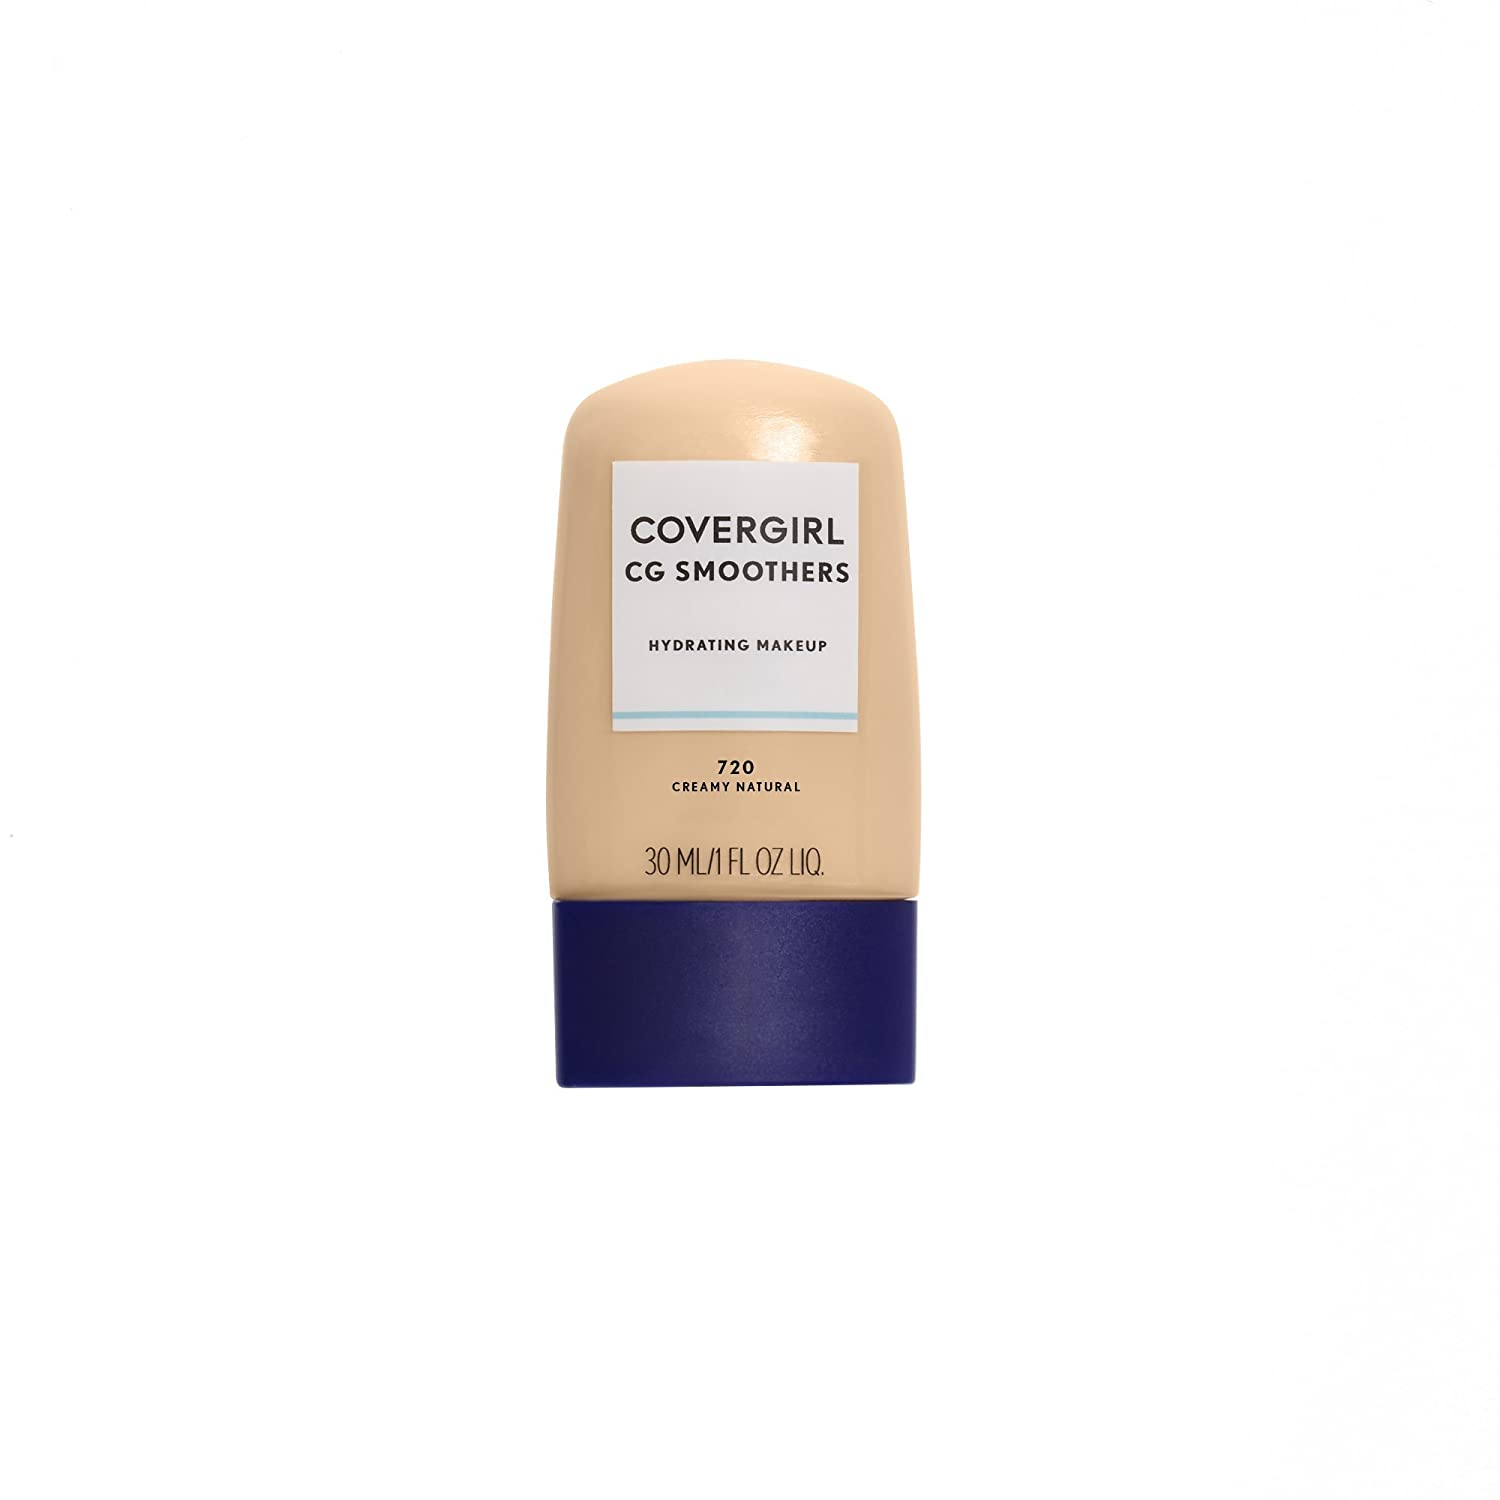 COVERGIRL Smoothers Hydrating Makeup Foundation, Creamy Natural (packaging may vary)